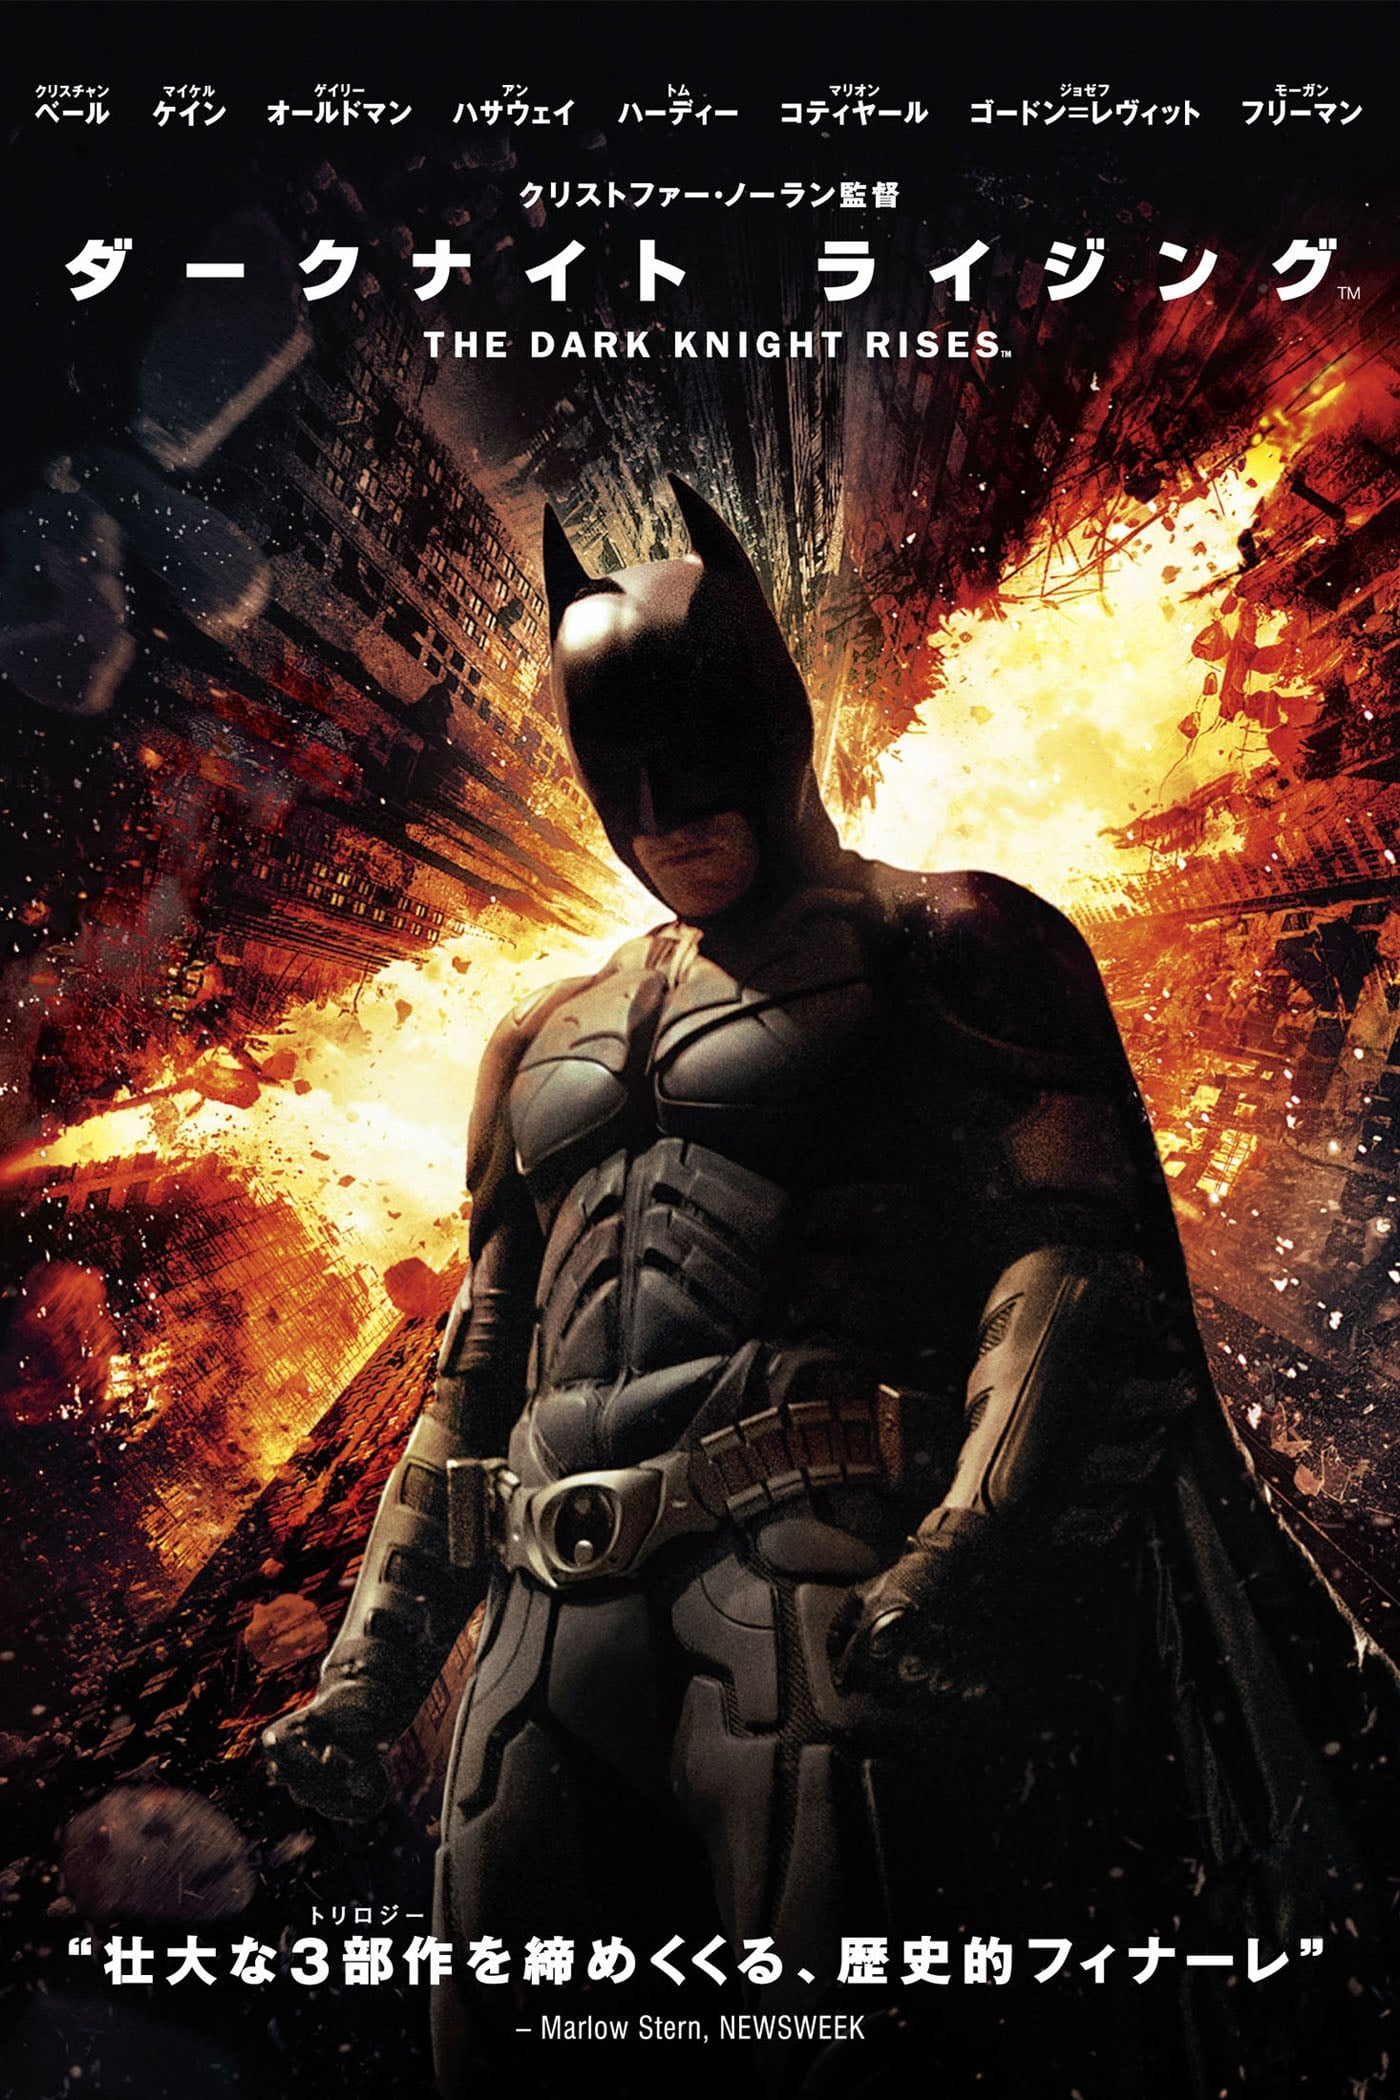 The Dark Knight Rises YIFY subtitles - details